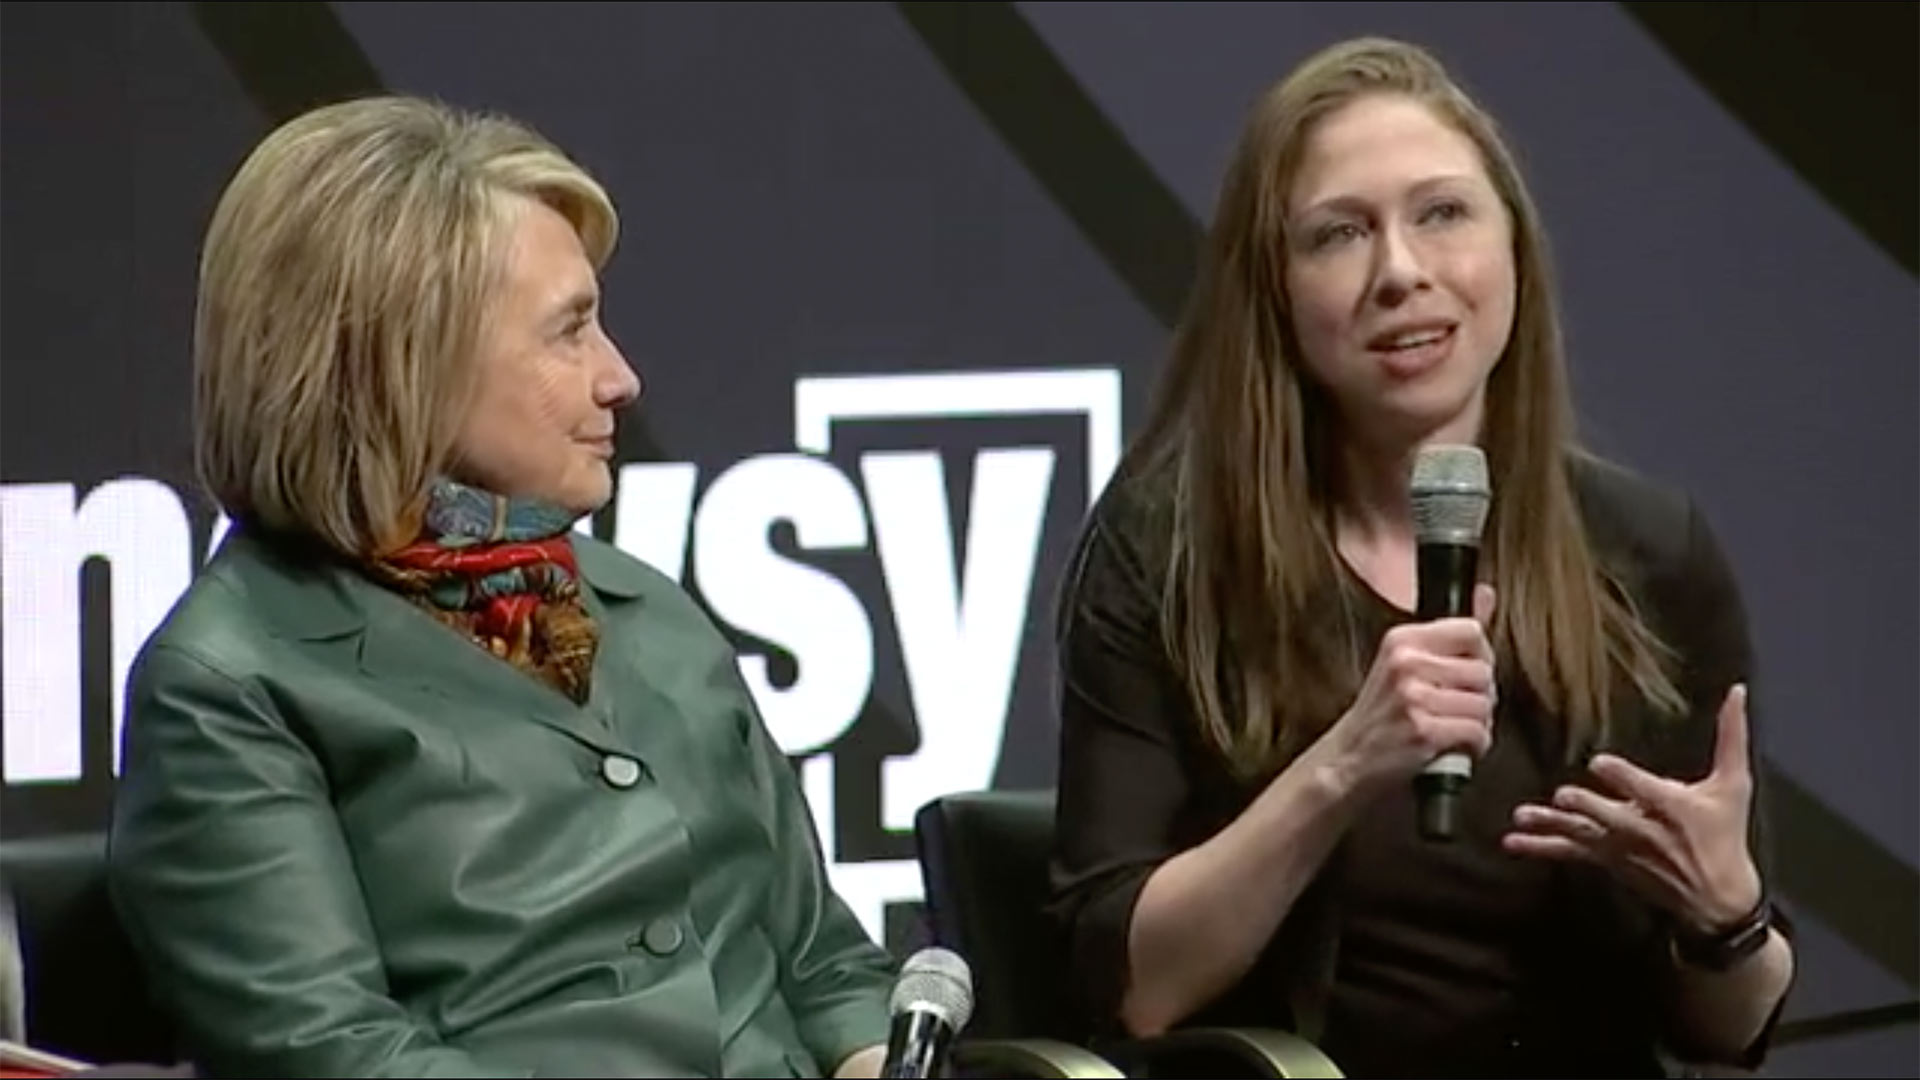 Hilary and Chelsea Clinton